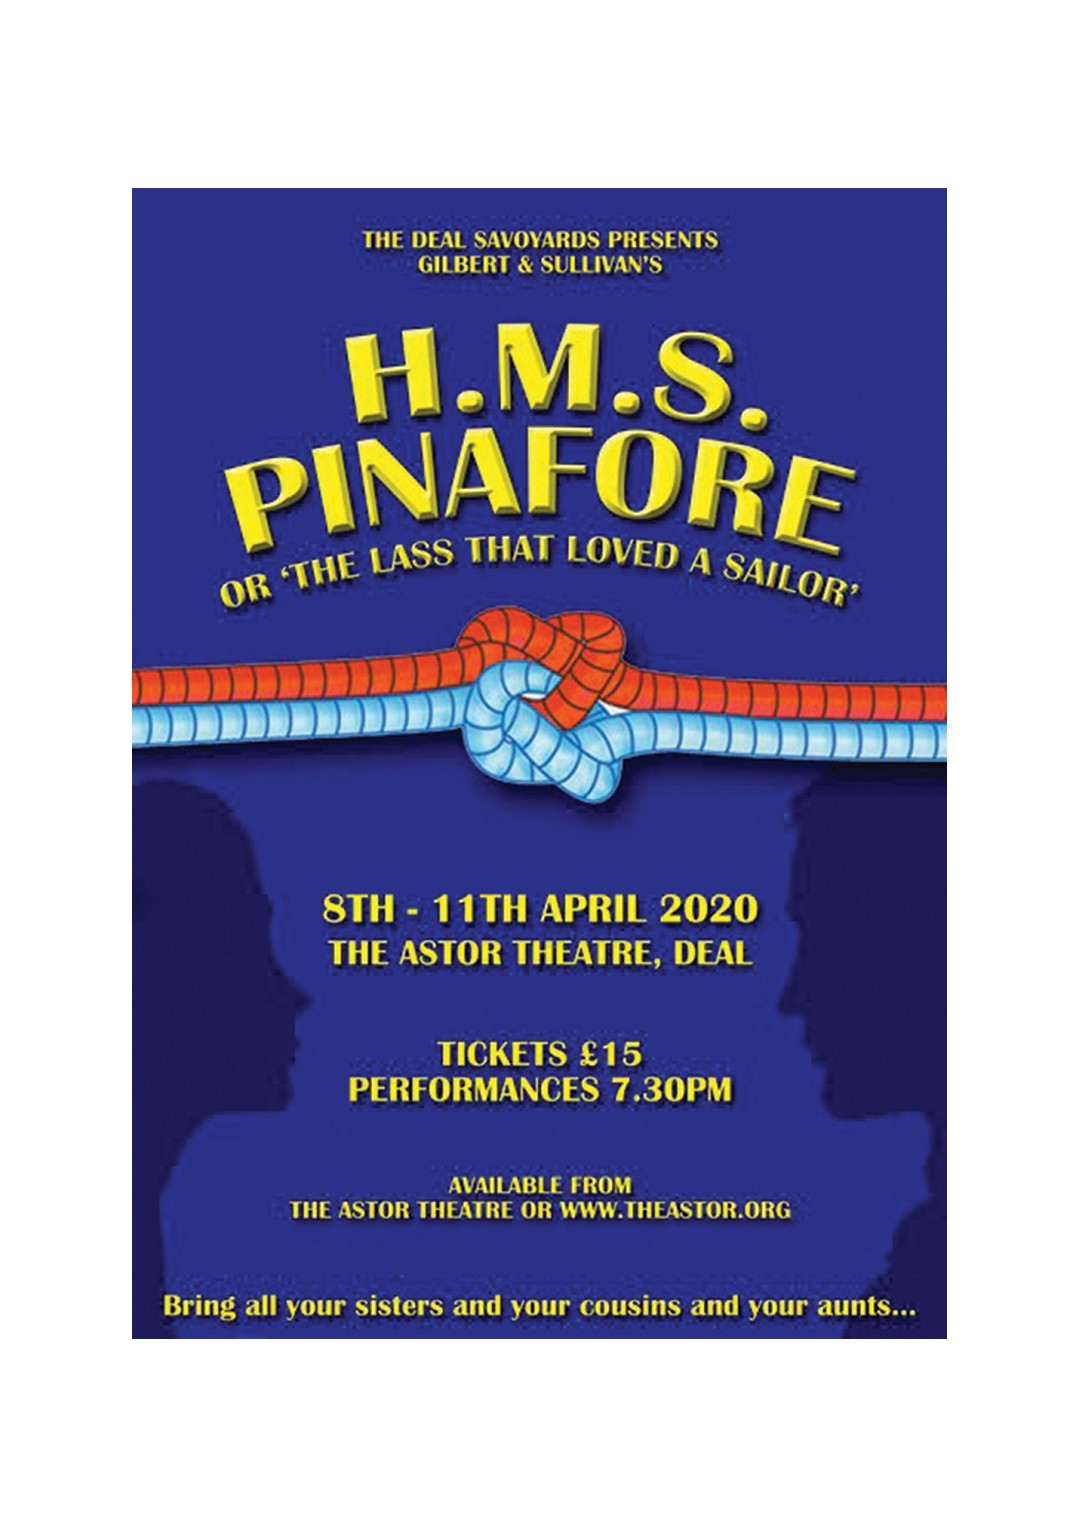 HMS Pinafore - Deal Savoyards